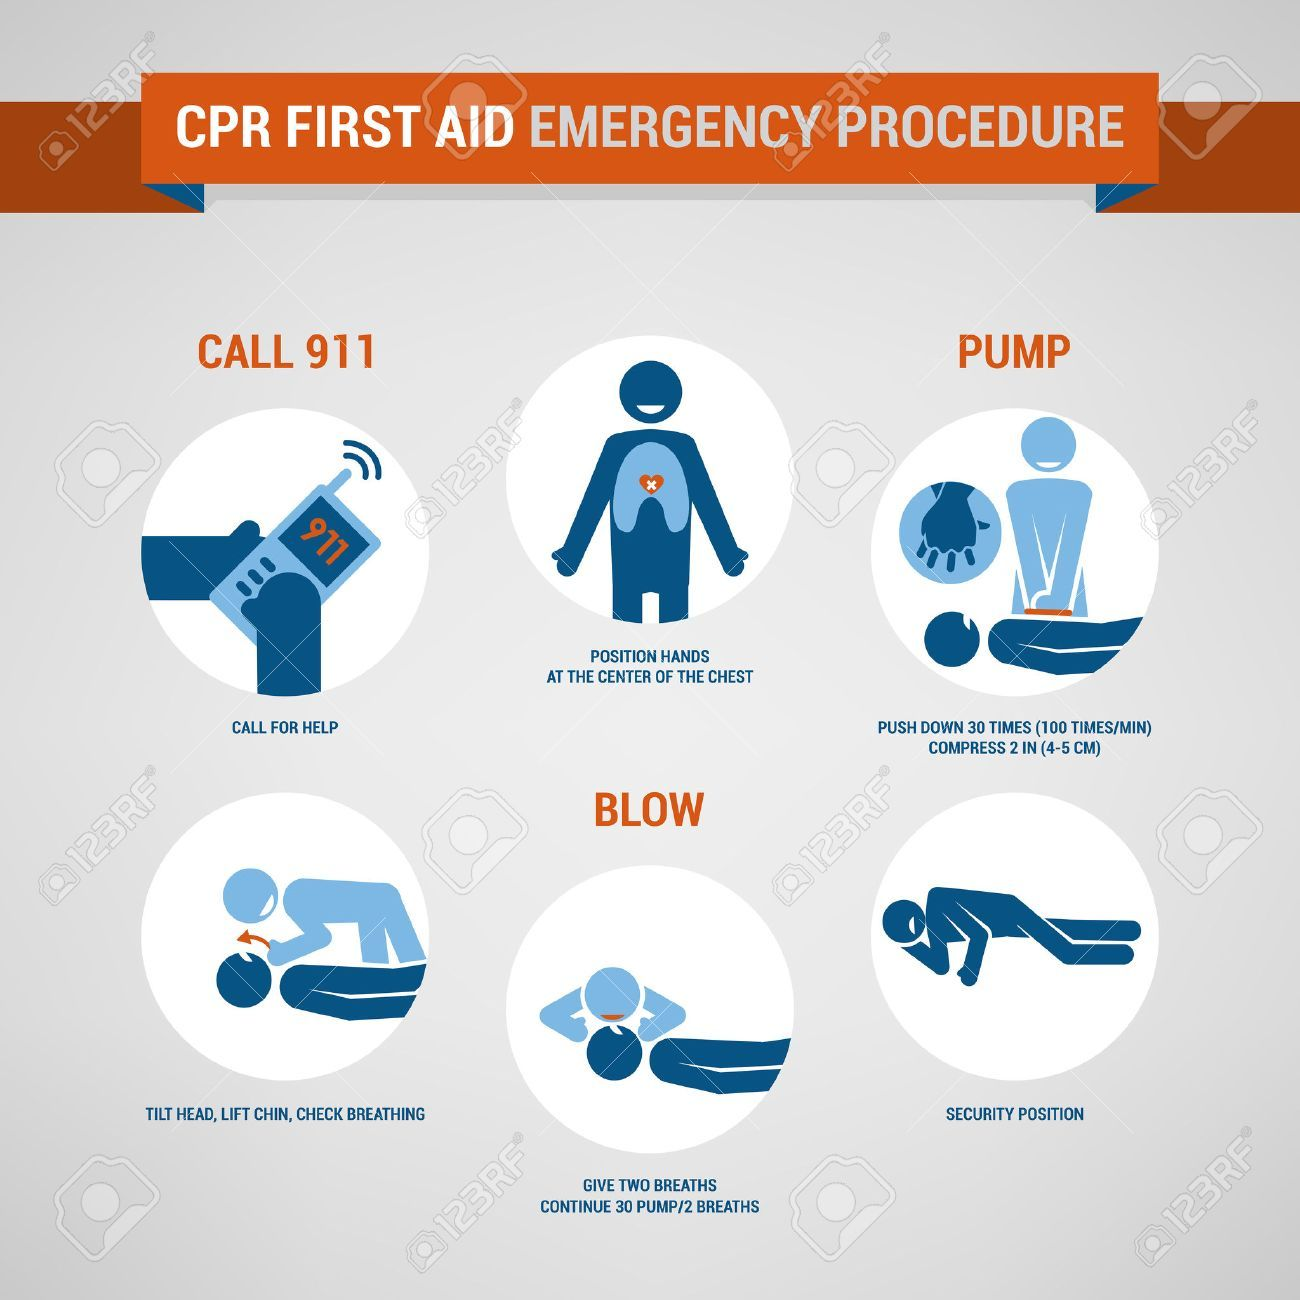 Cpr Full Form Is Cardiopulmonary Resuscitation Which Is An Emergency Life Saving Procedure It Consists Mainly Of Mouth Cpr First Aid Procedures Cpr Procedure